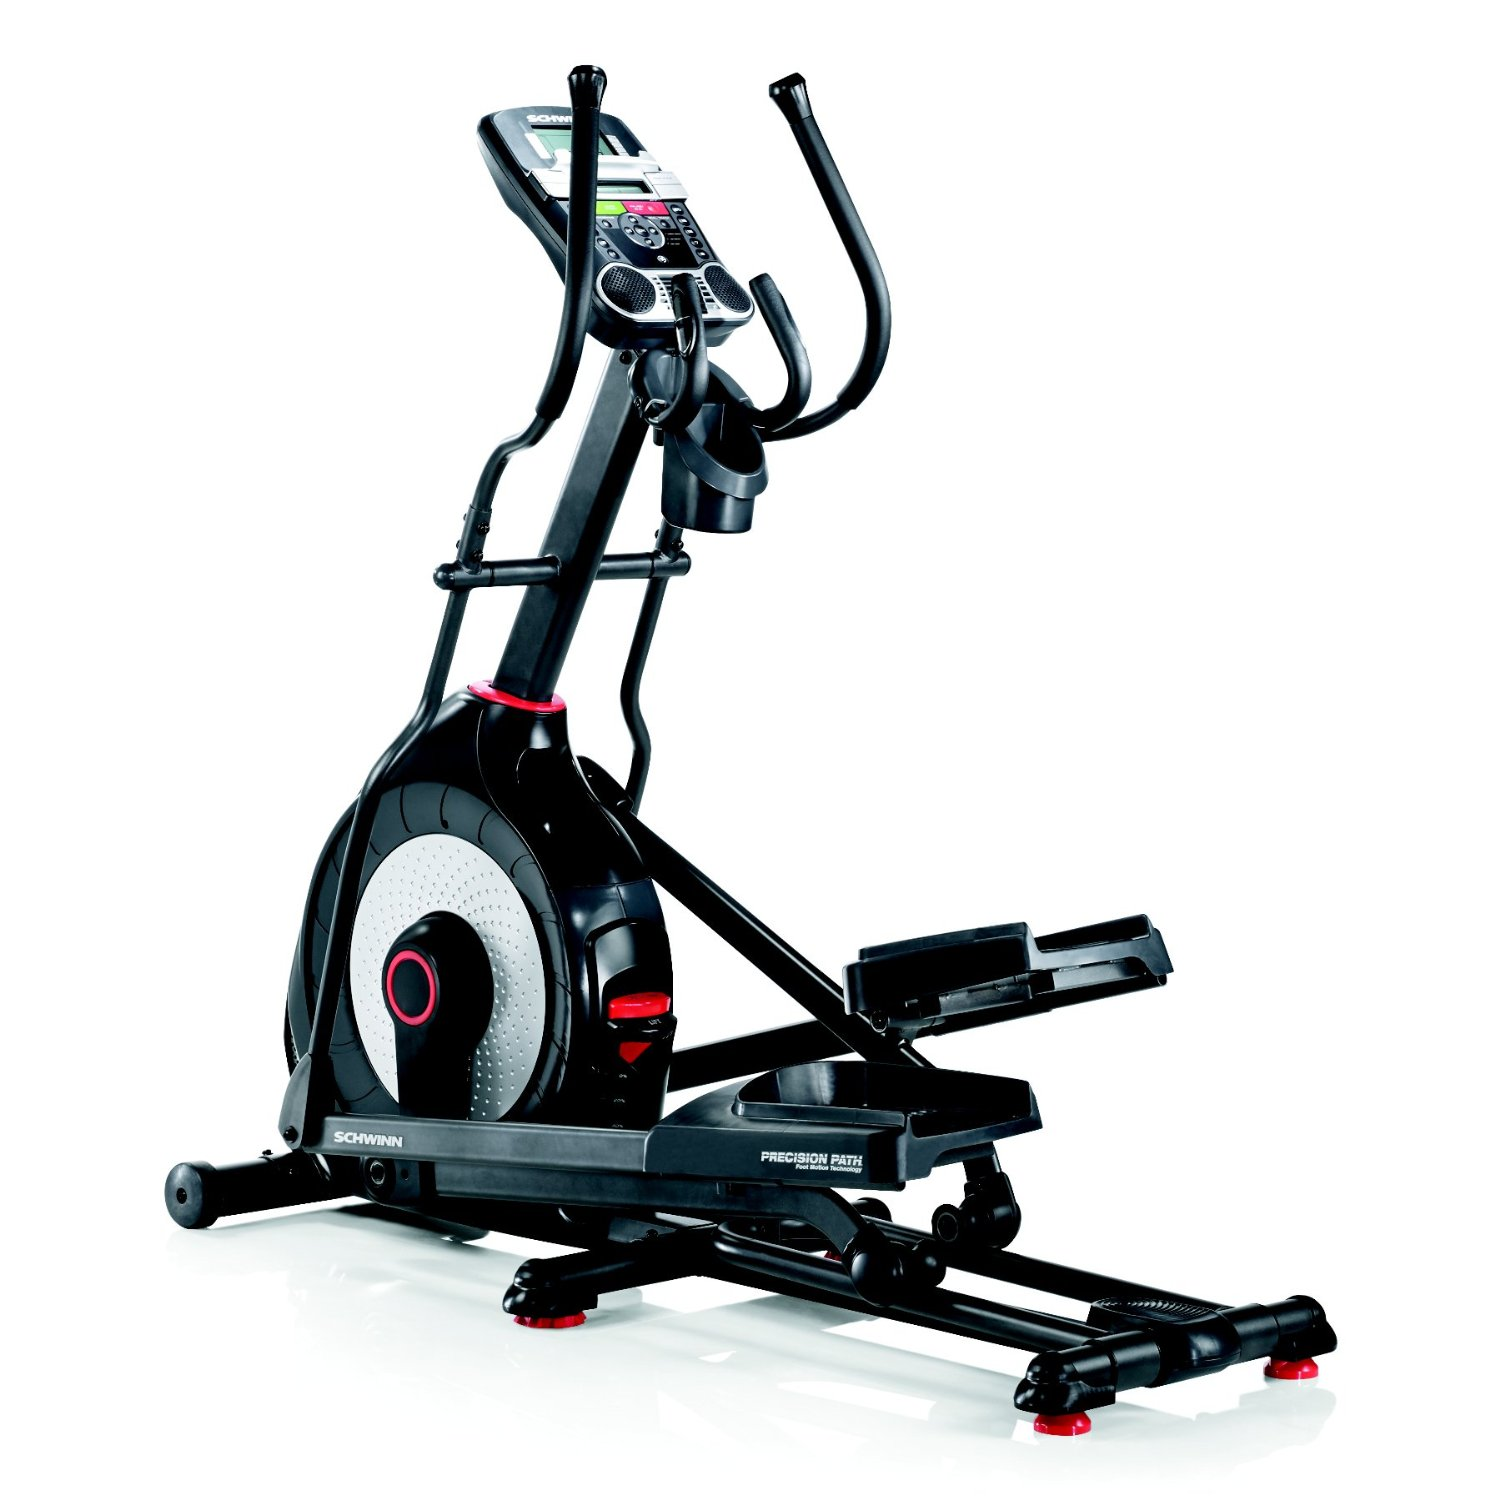 Schwinn Elliptical Trainer Reviews - 470 Model